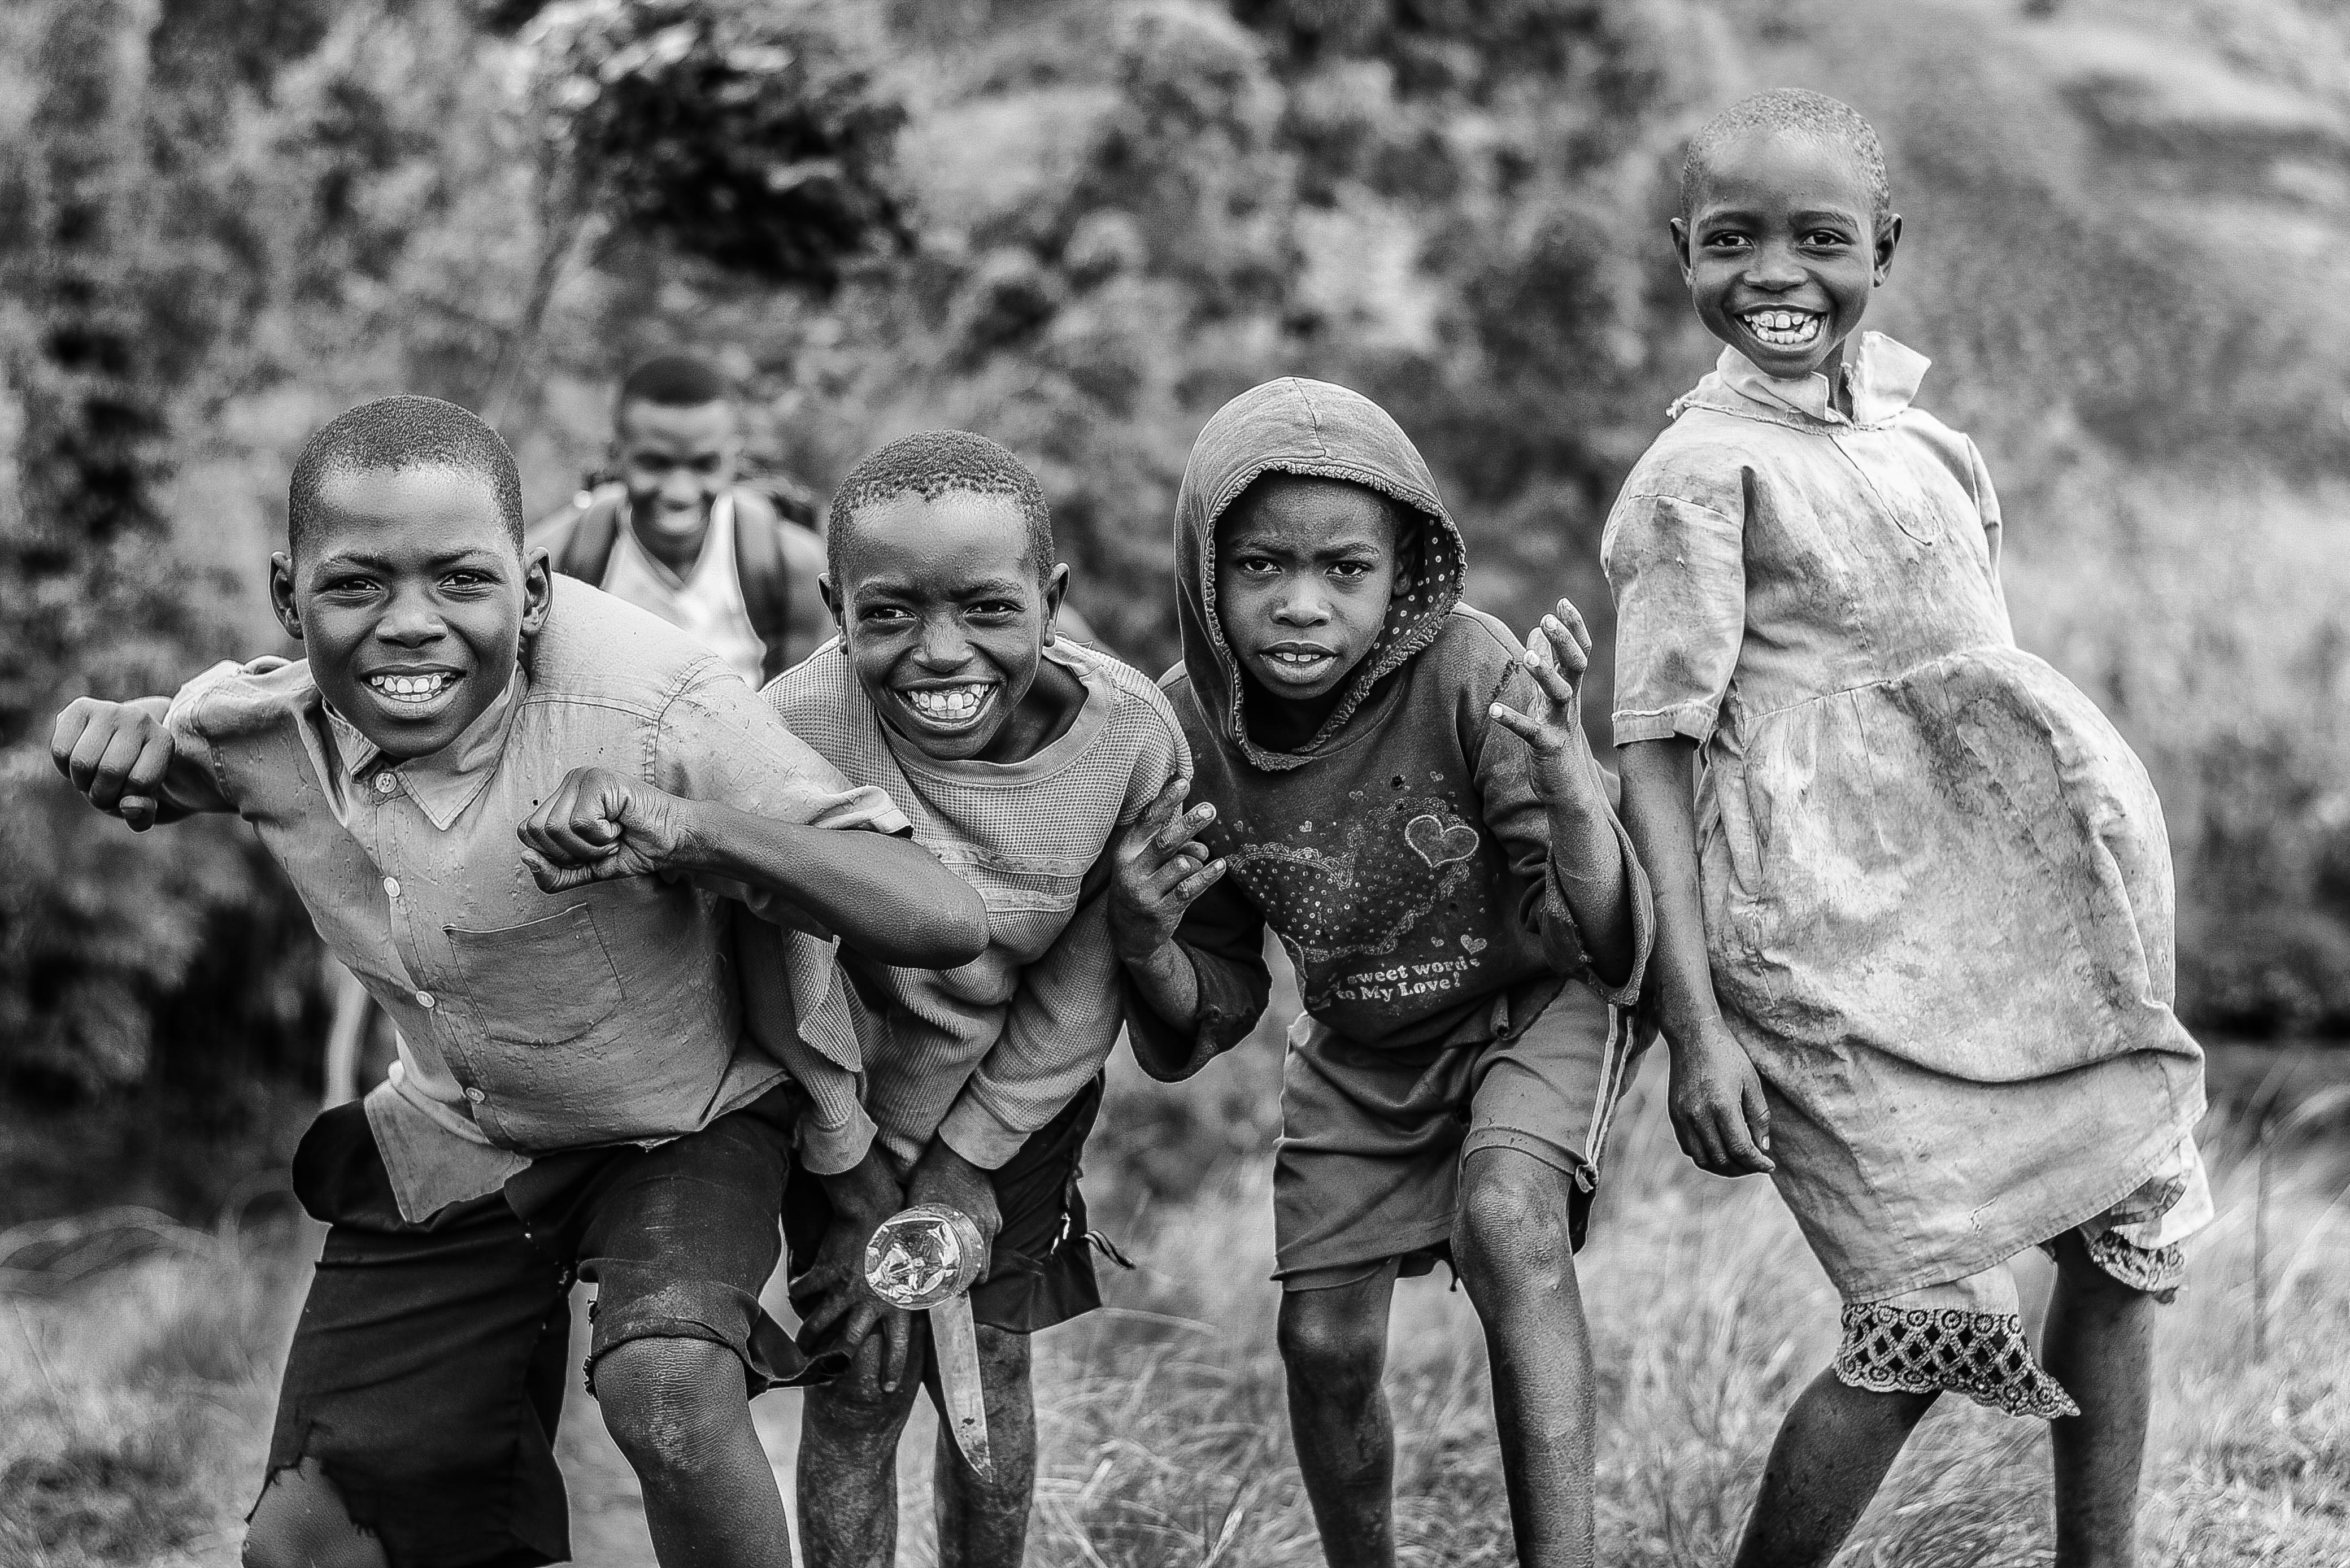 Grayscale Photograph Group of Children